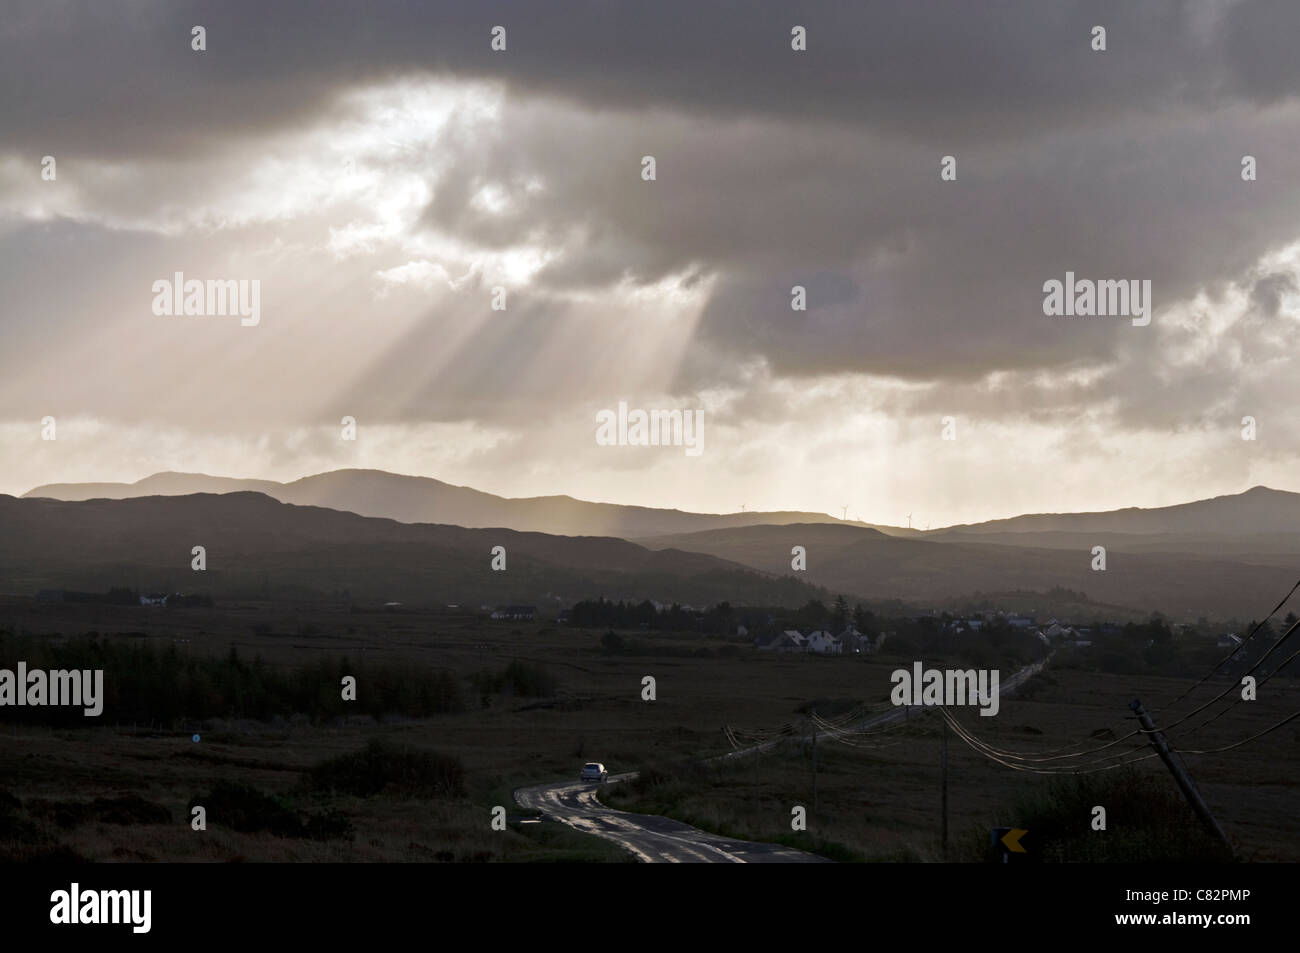 N56 road leading into the glen of Glenties during a storm - Stock Image